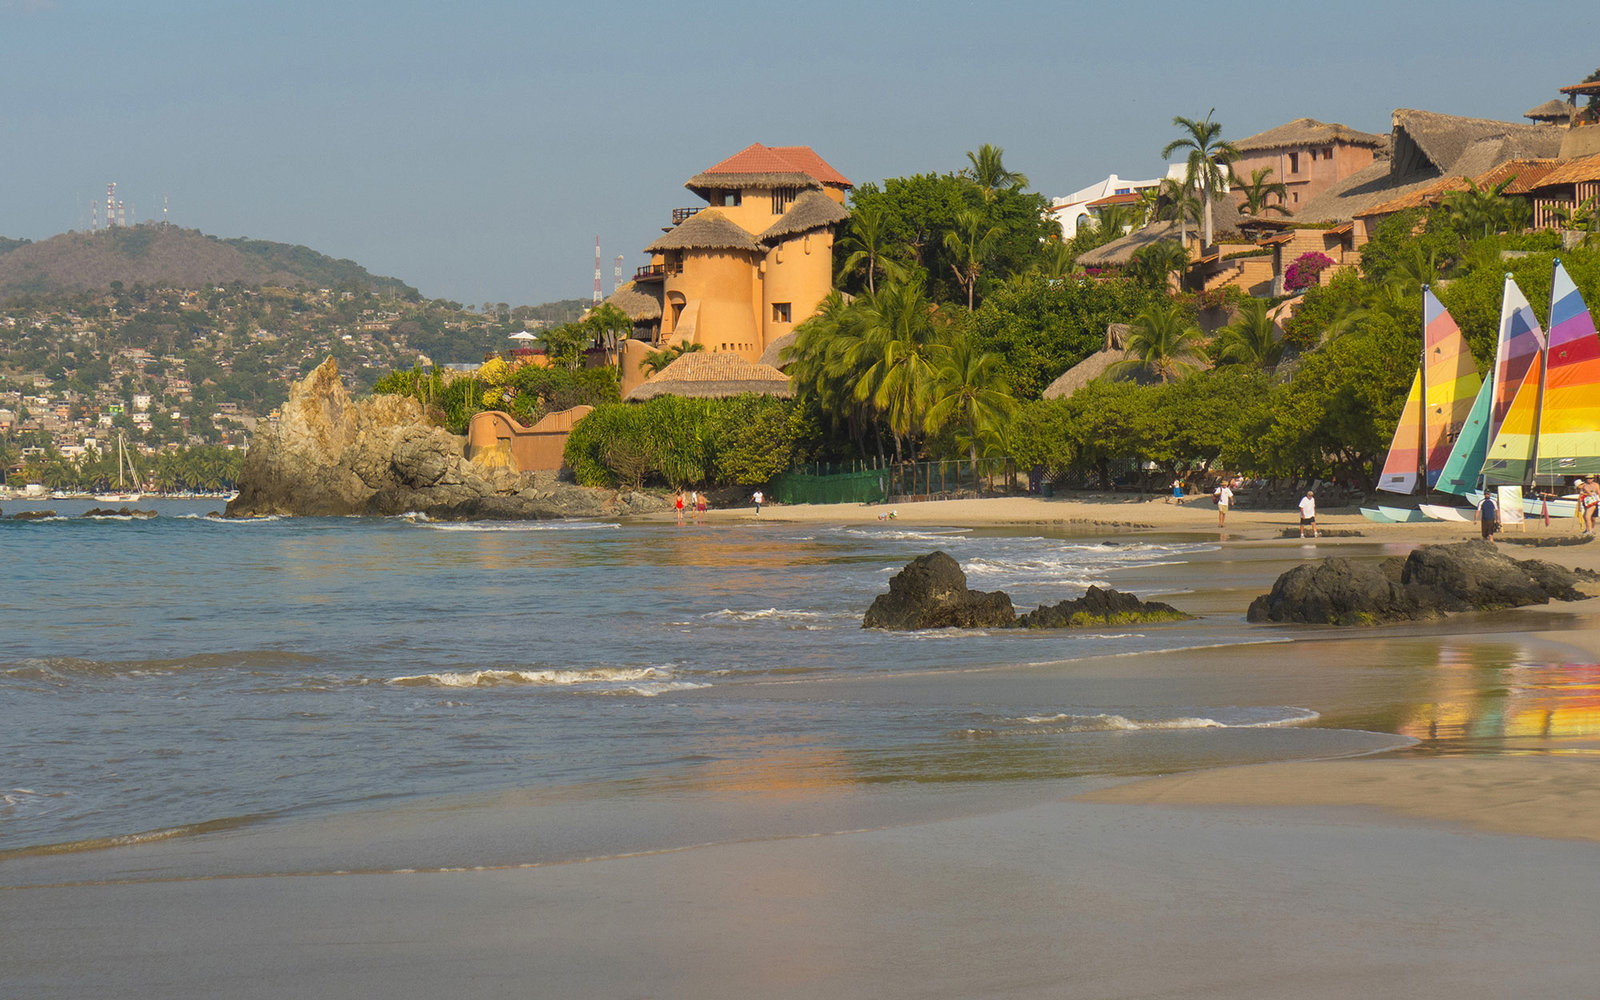 Beach of Playa La Ropa, Zihuatanejo, Guerrero, Mexico